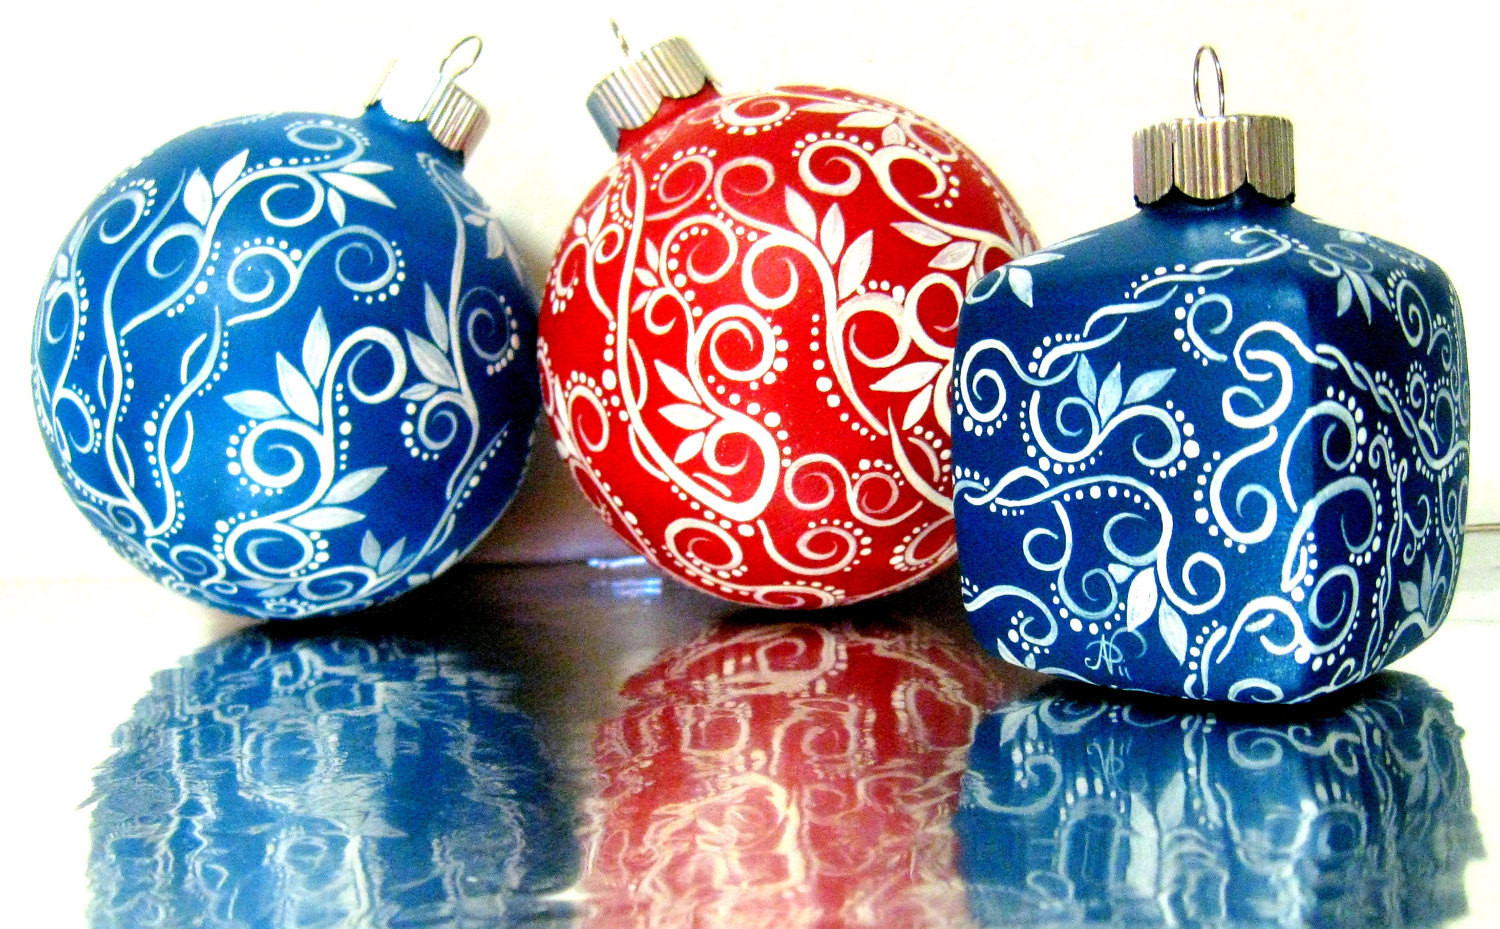 White Christmas ornaments Best Of Small Blue and White Christmas ornament Hand Painted Glass Of Attractive 44 Images White Christmas ornaments